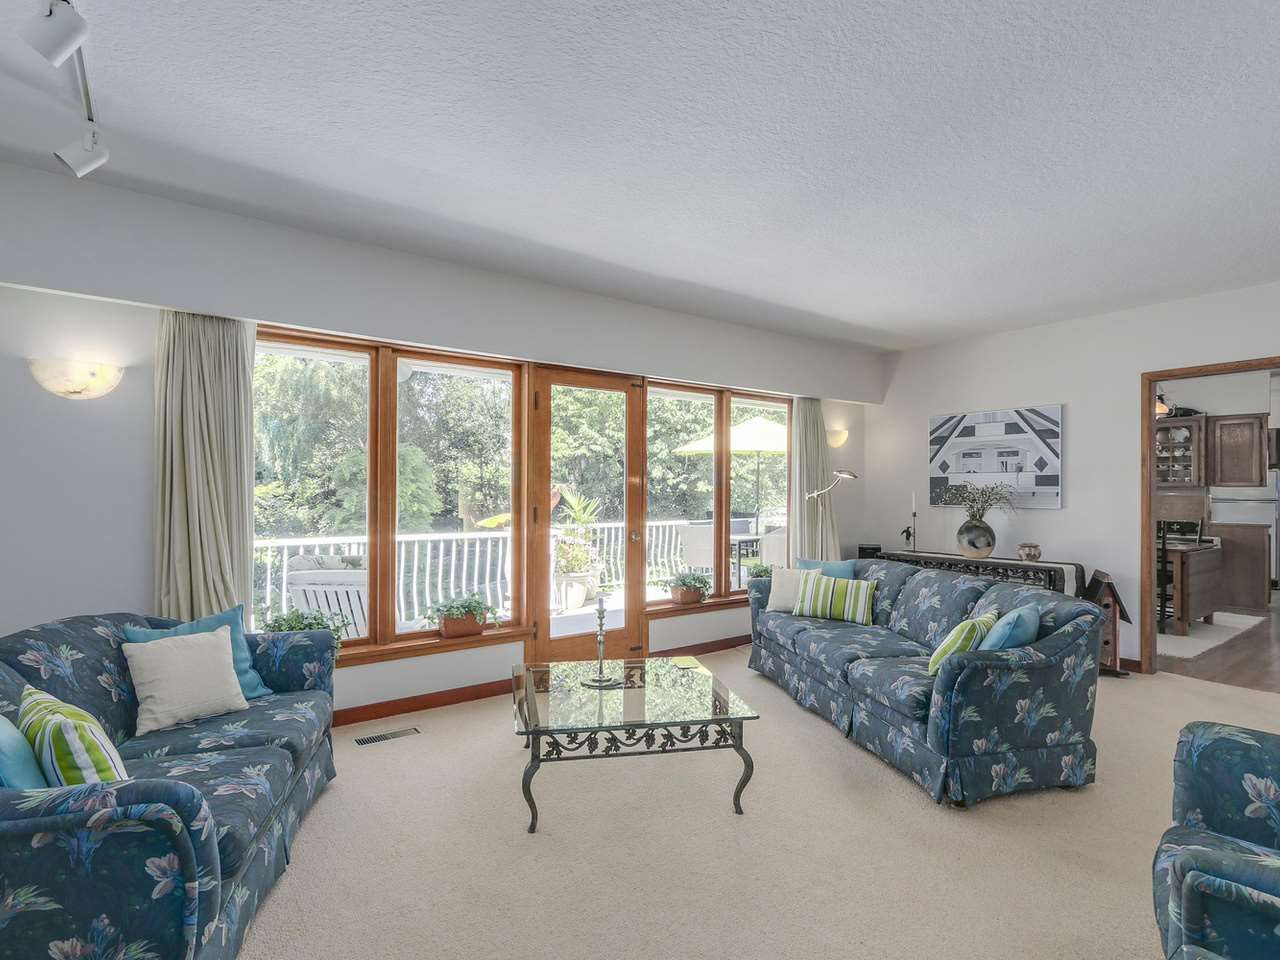 Photo 4: Photos: 587 HARRISON Avenue in Coquitlam: Coquitlam West House for sale : MLS®# R2097877